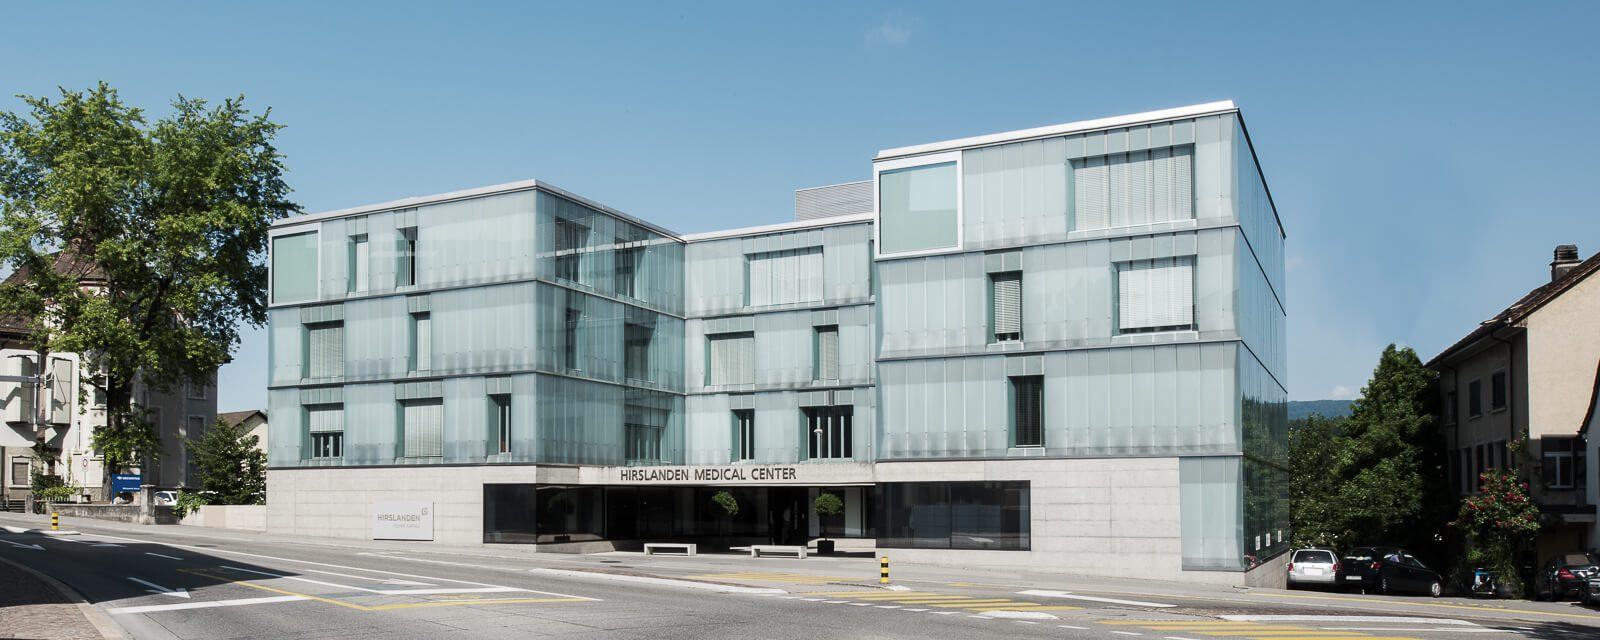 neurozentrum-aarau-eingang-hirslanden-medical-center